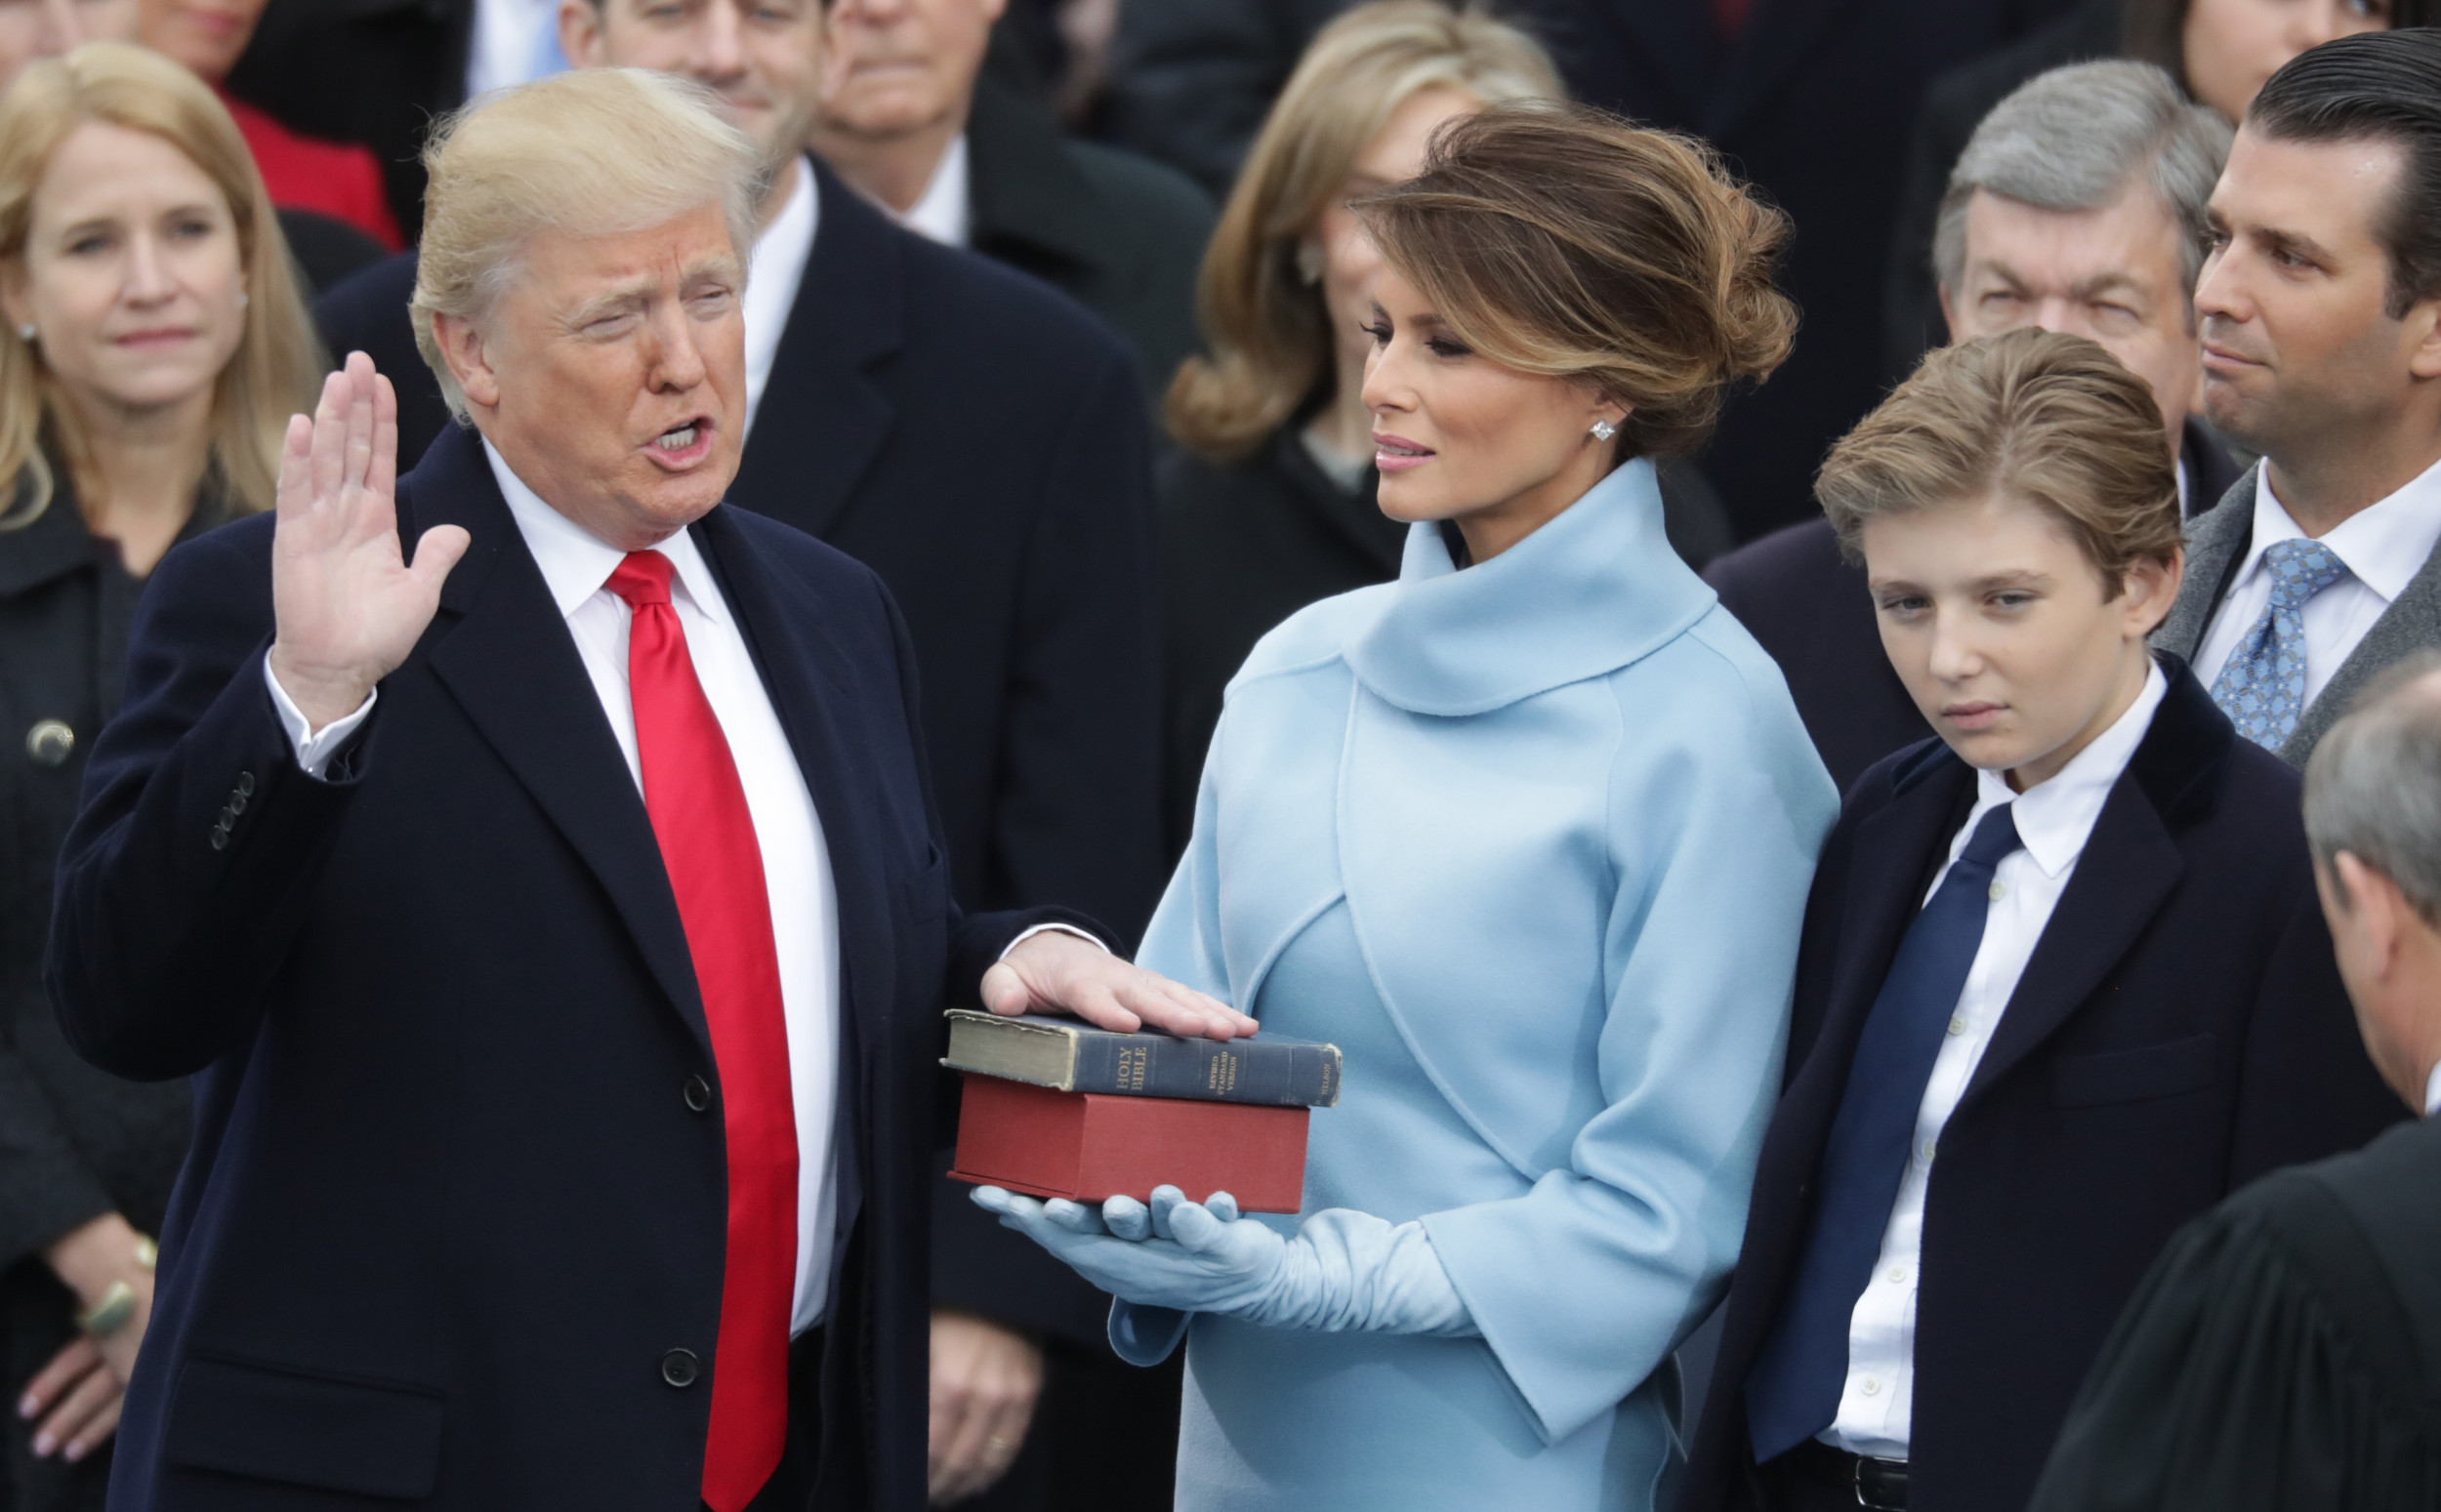 Fact Check: Are Tickets for Trump's Second Inauguration Being Sold Online?